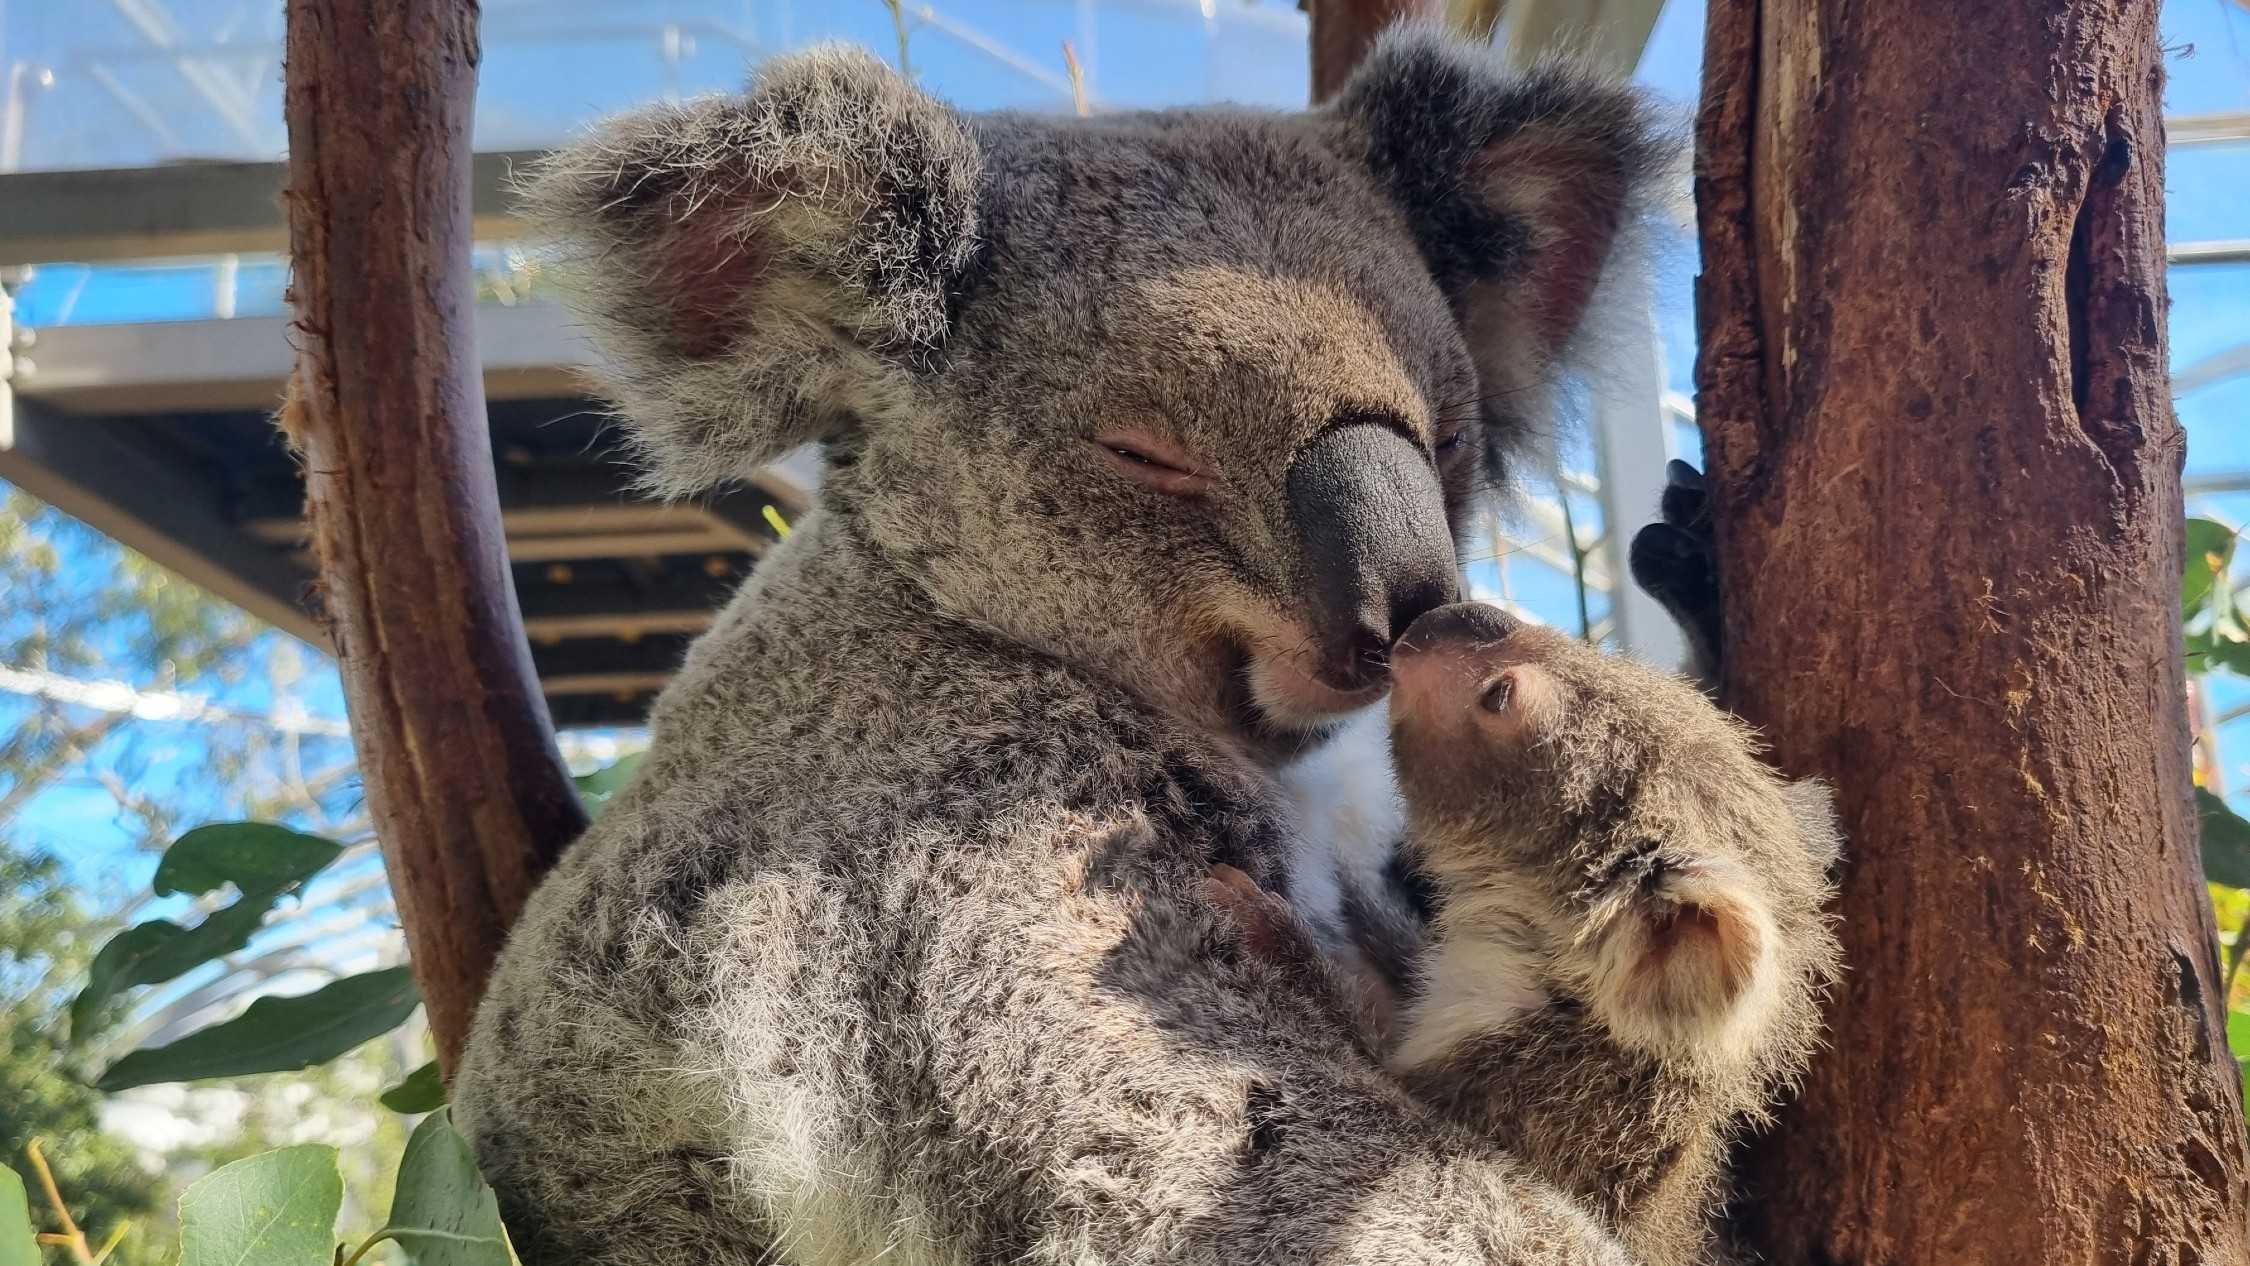 You can name one of the new koala babies at this zoo in Sydney and win a prize